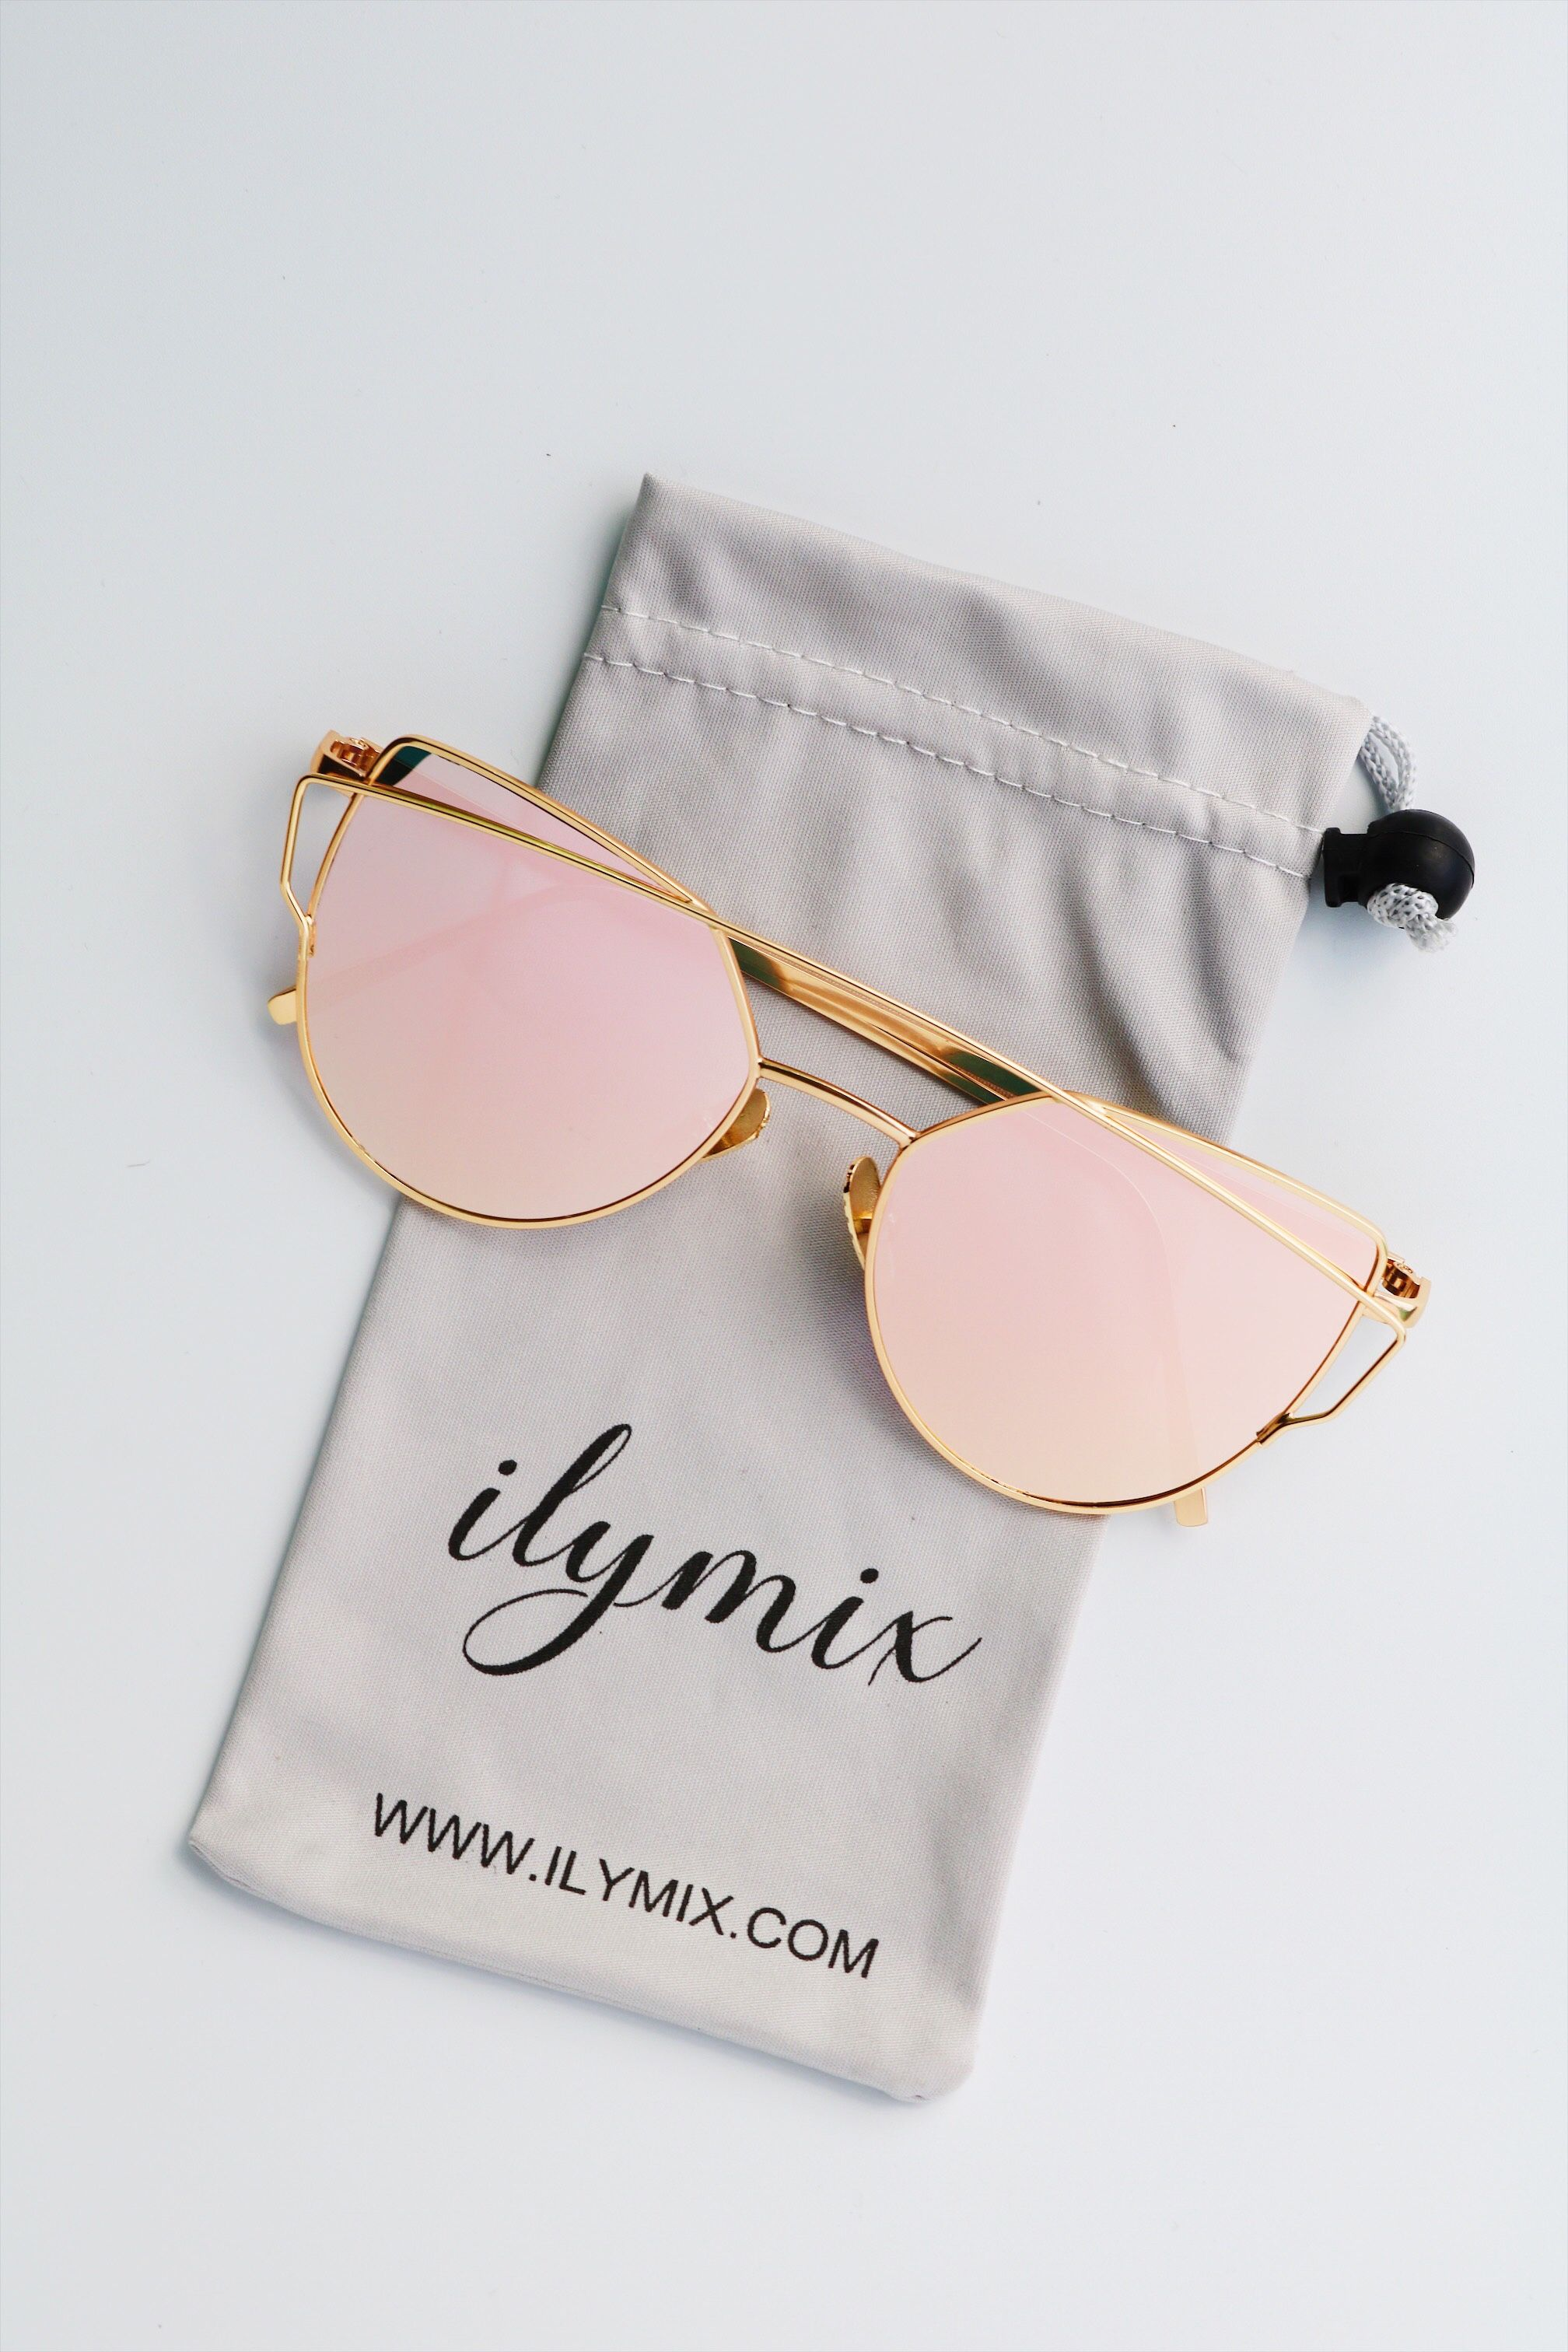 d870d9910 Designer sunglasses women mirror shades fashion styles, pink mirrored  Sunglasses rose gold, quay ray ban Sunglasses, sunglasses 2018, Summer  fashion shades ...